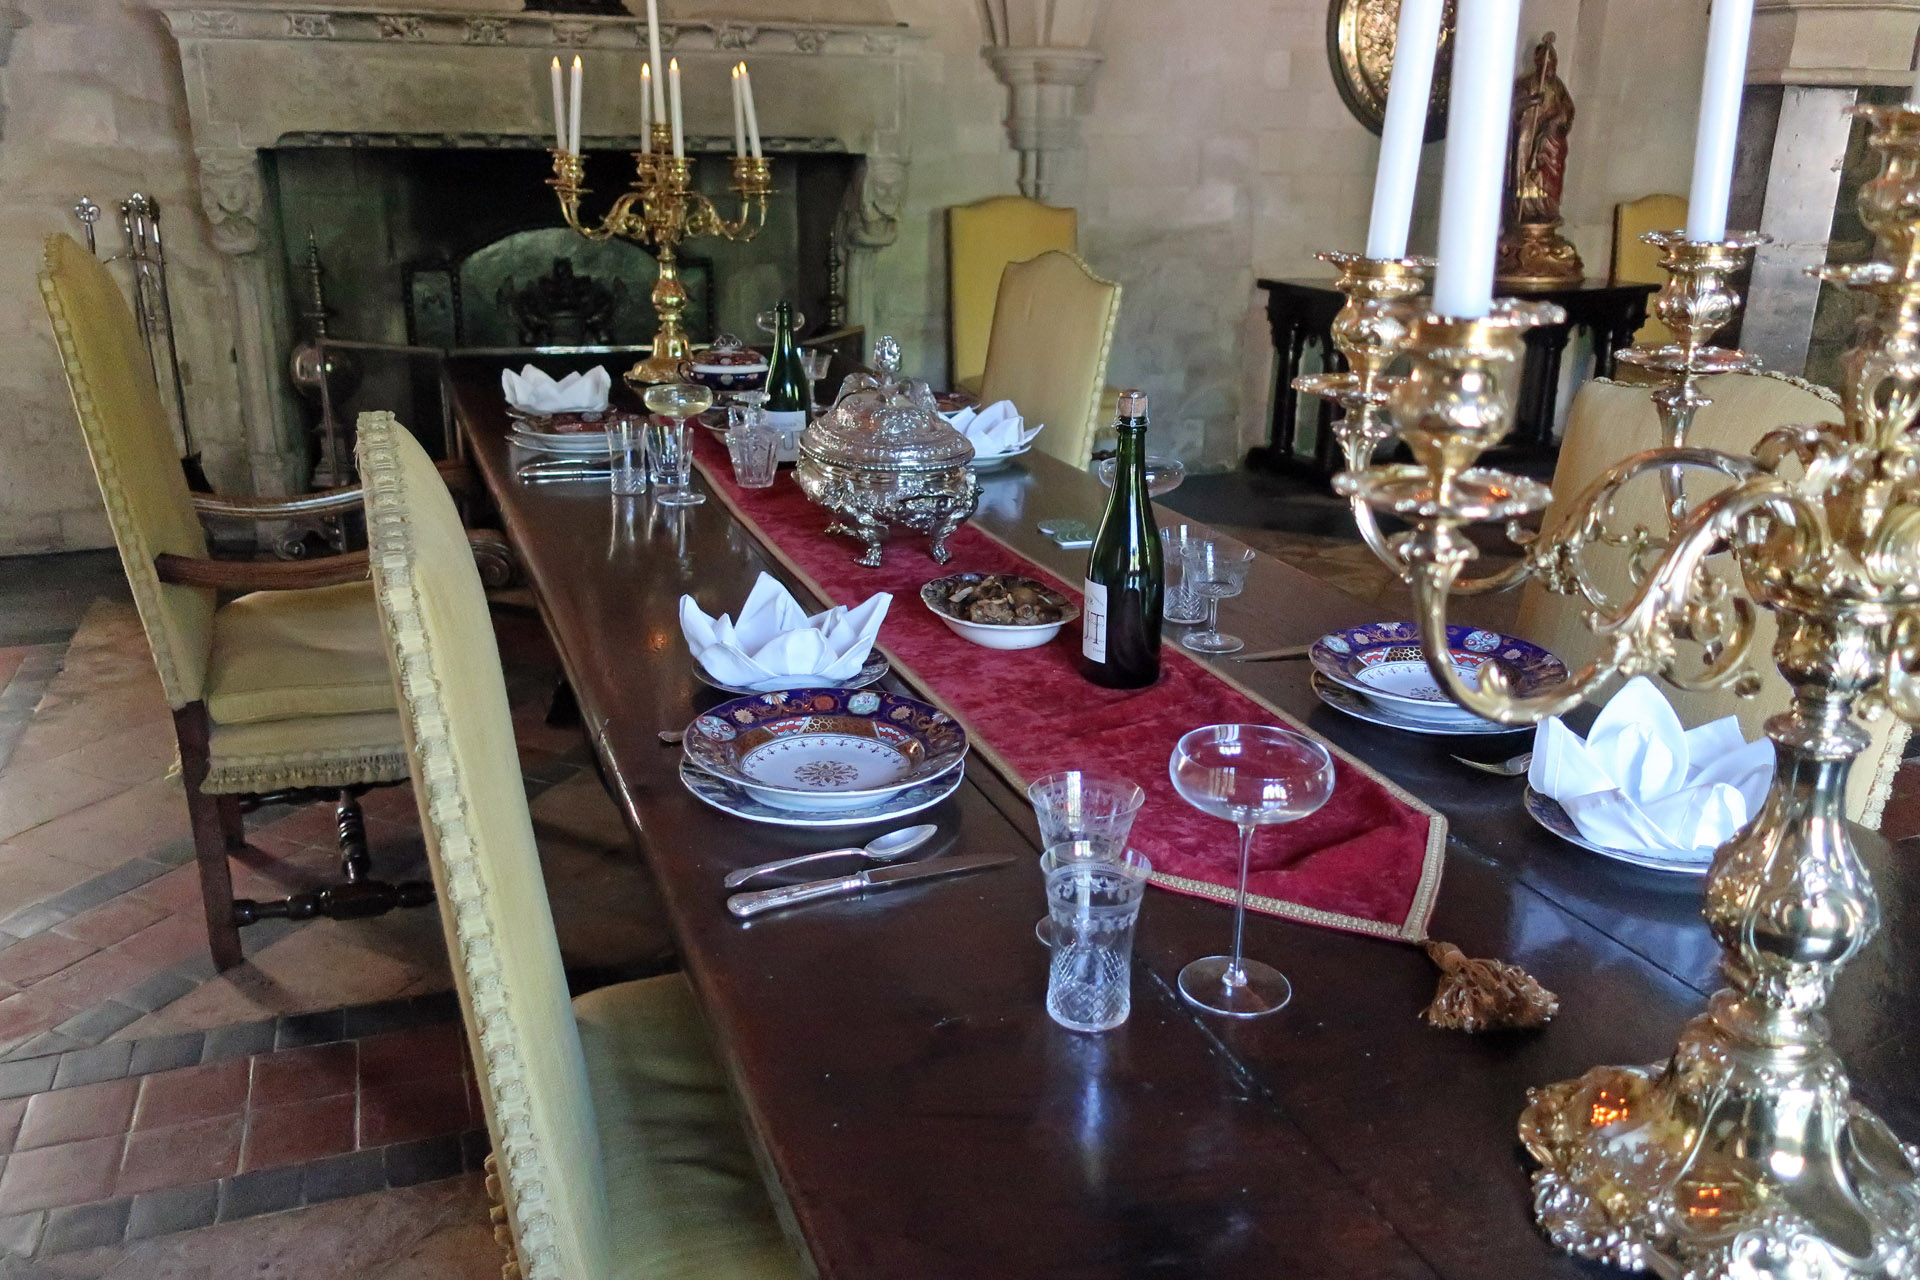 dining table, anglesey abbey, cambridgeshire